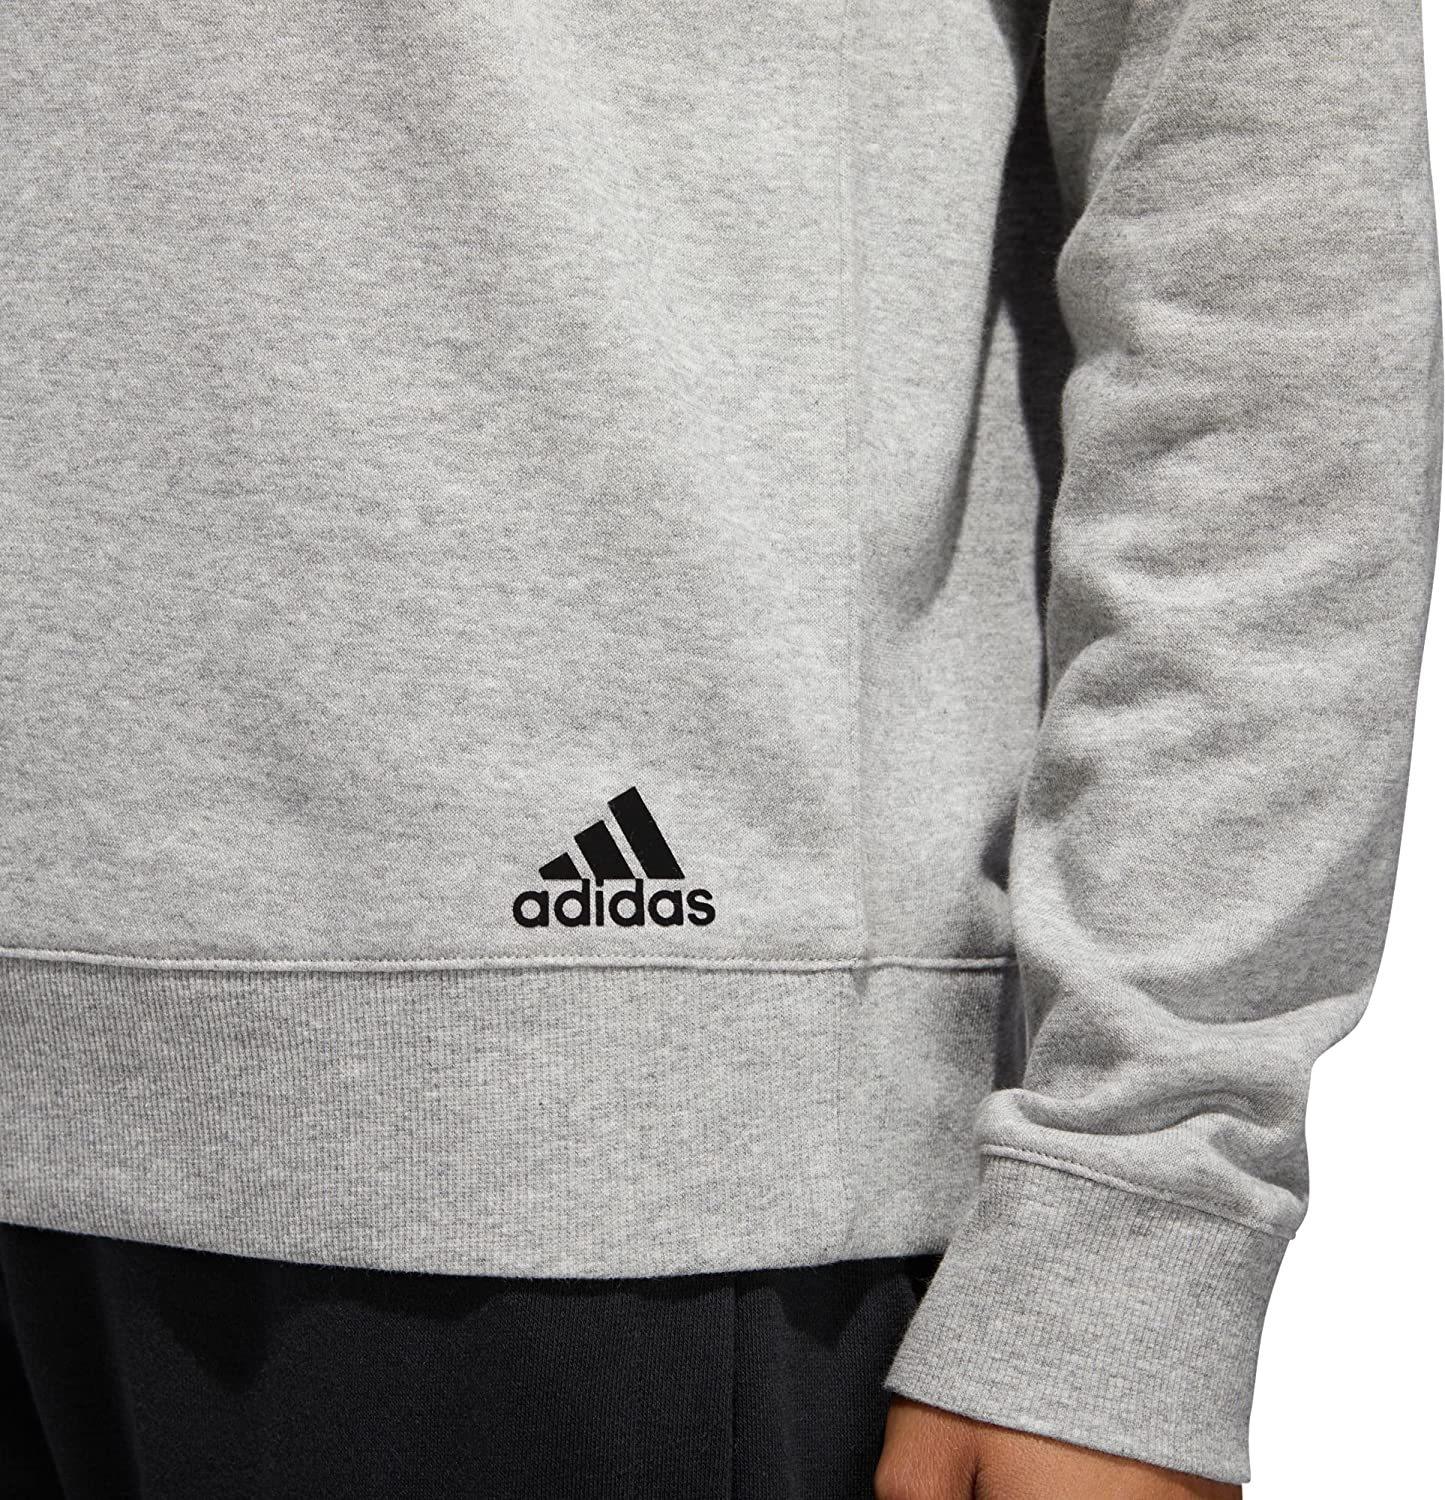 adidas pour Femme French Terry Conversion Rapide Crew Sweat (Noir, XS) Mgh